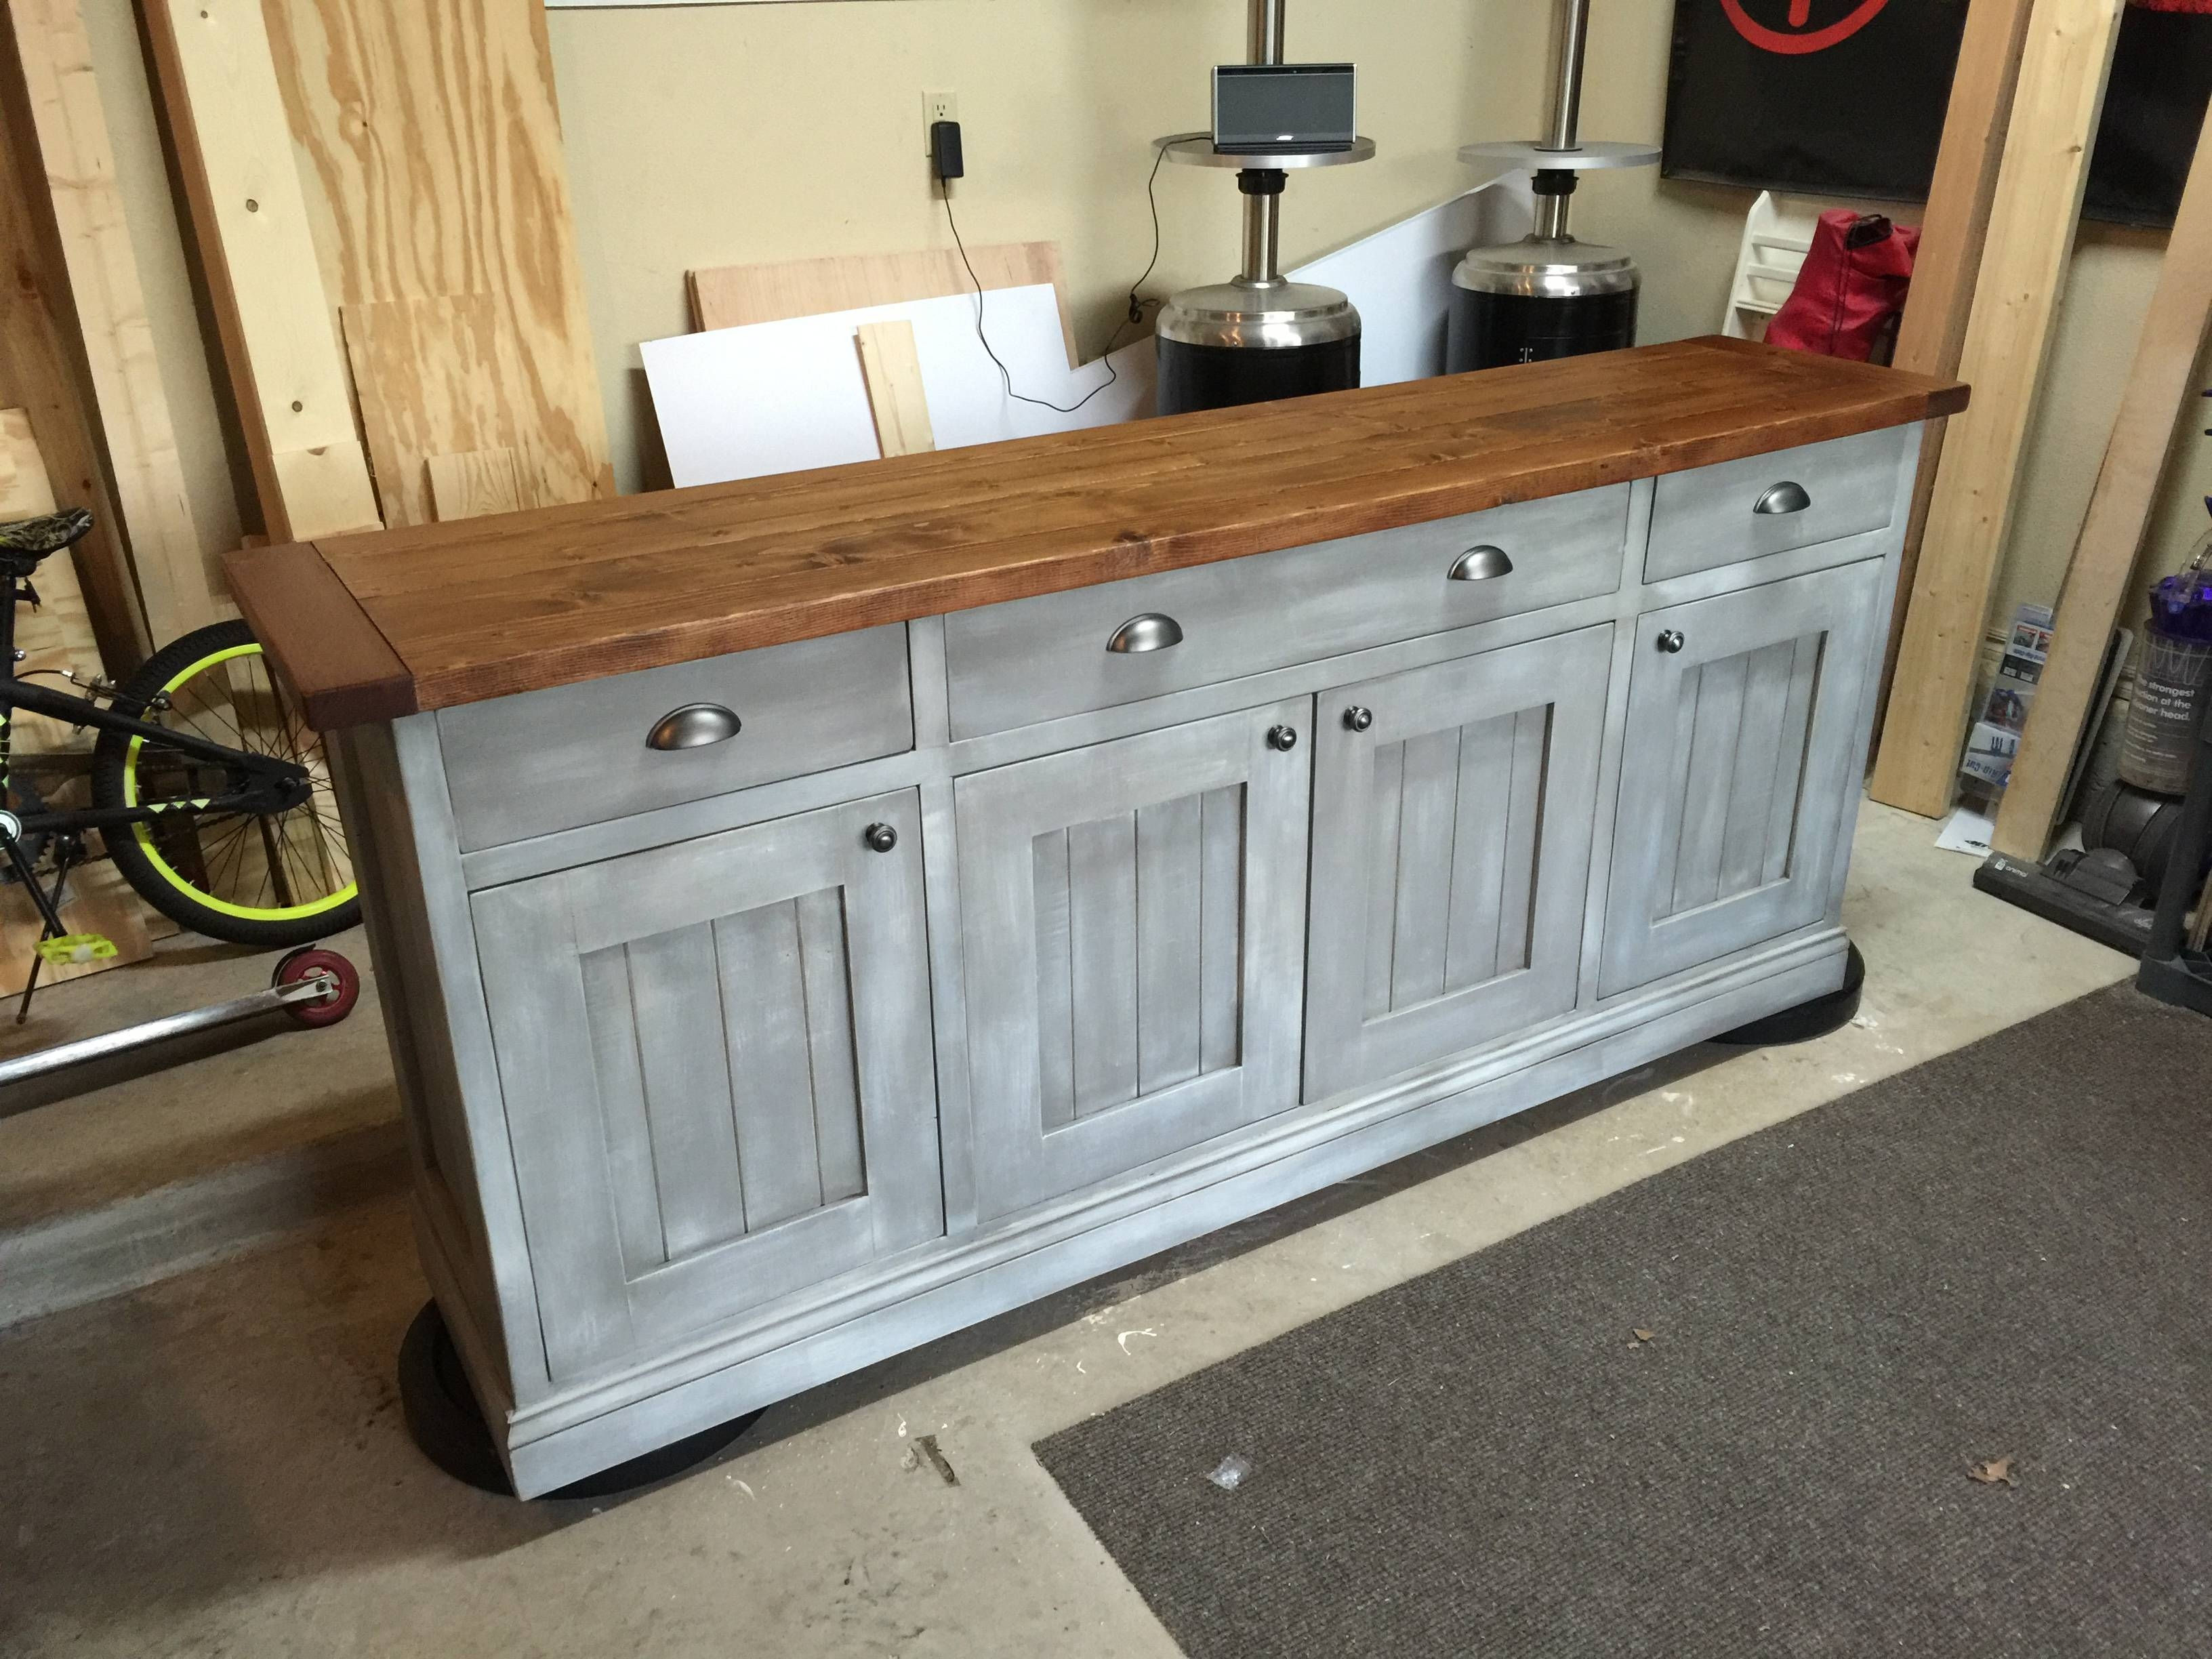 Ana White | Planked Wood Sideboard – Diy Projects Inside Distressed Wood Sideboards (View 14 of 15)